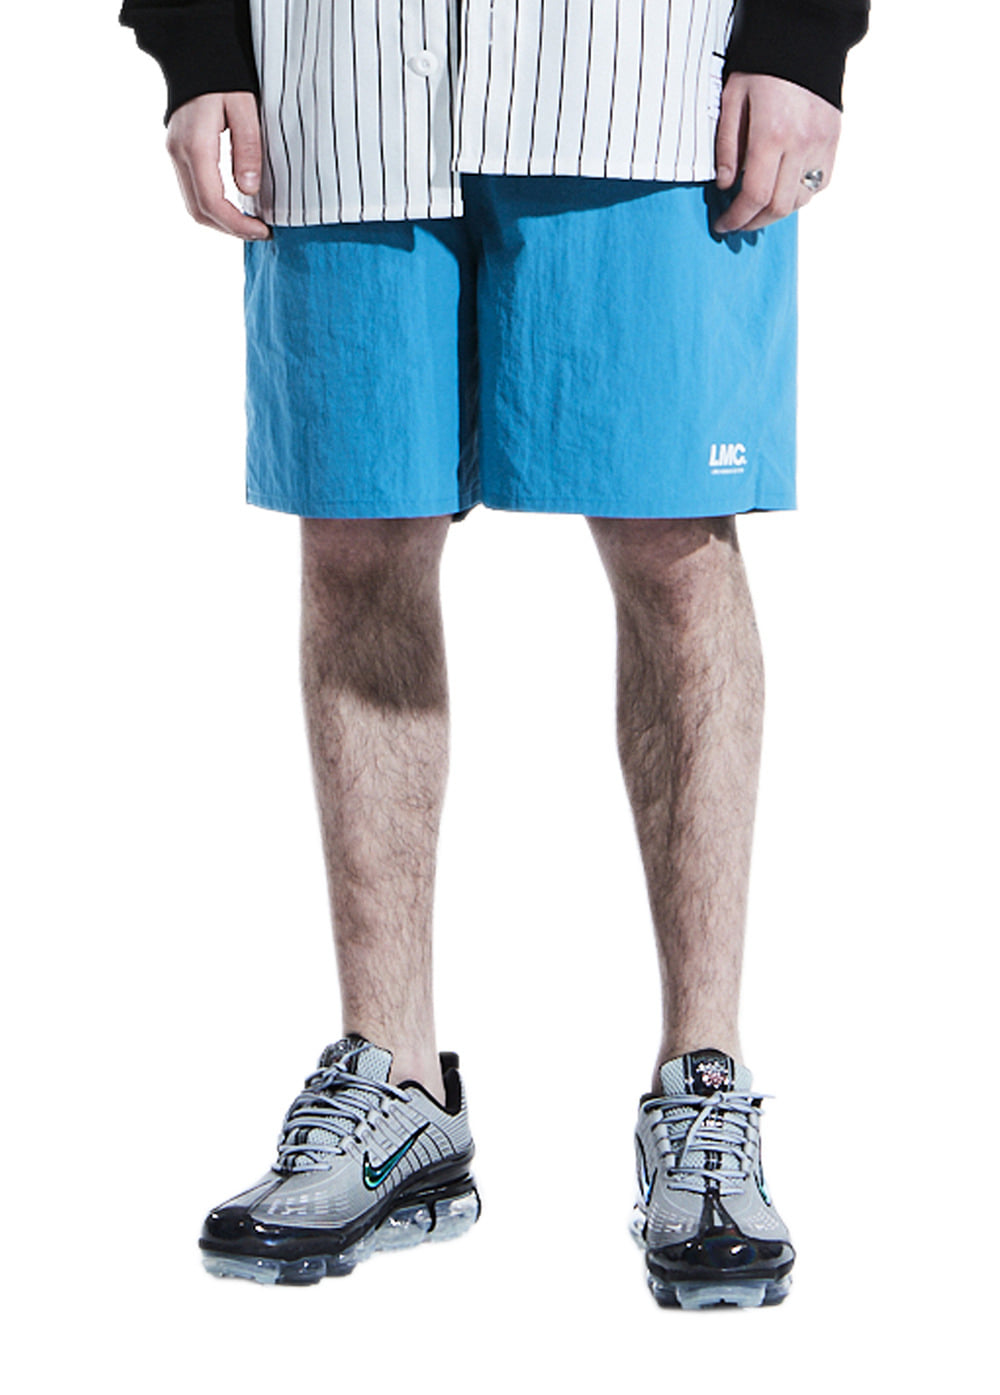 LMC ASSOCIATION TEAM SHORTS blue